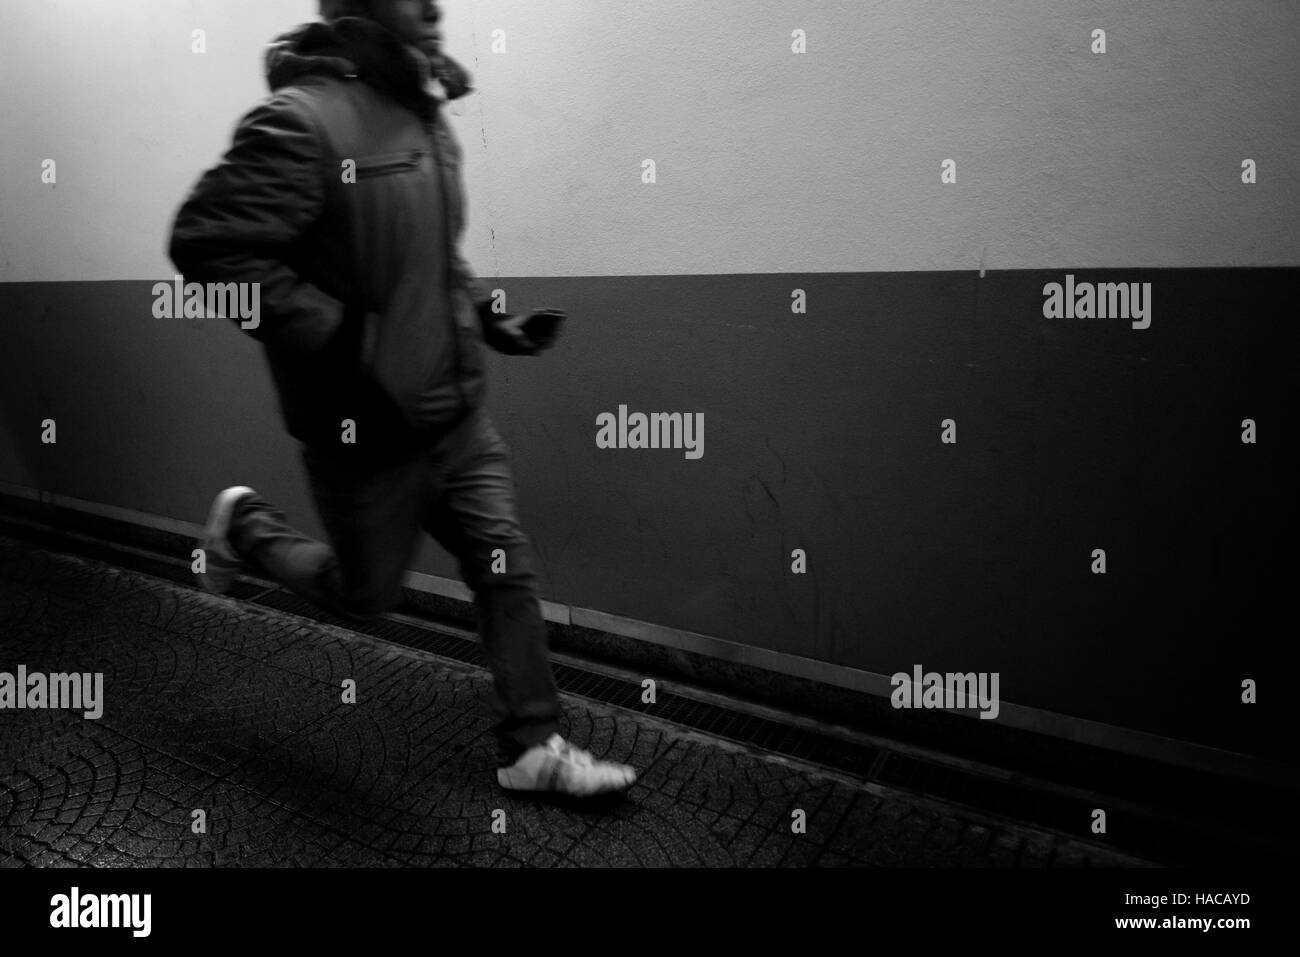 Running man - Stock Image